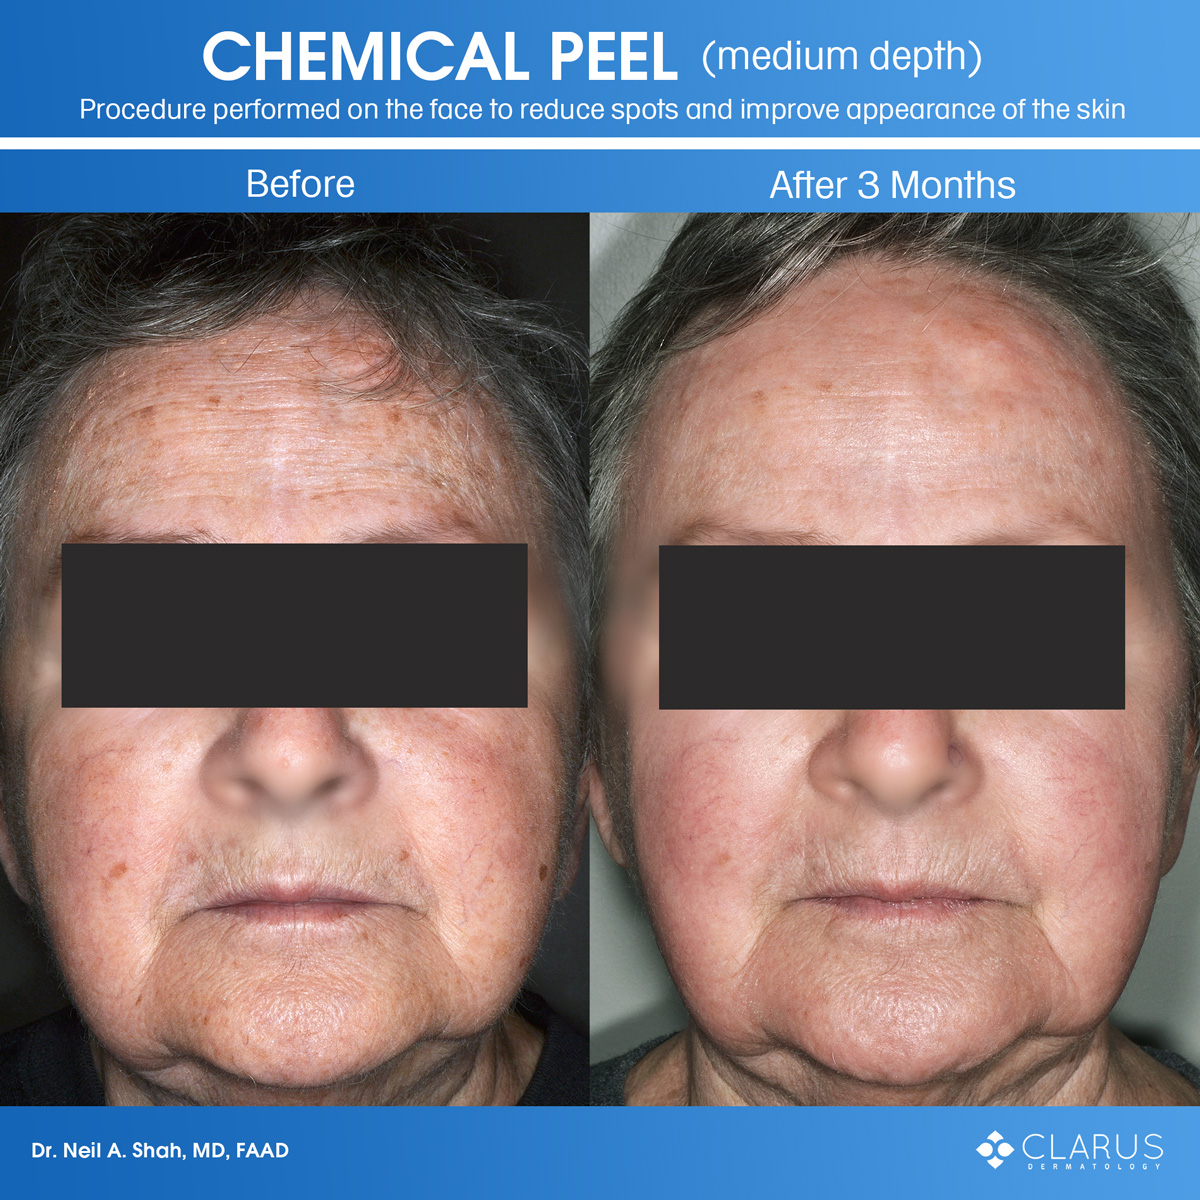 We perform a number of cosmetic treatments at Clarus Dermatology and among them, chemical peels are time-tested, high-value, and popular for dealing with acne, sun-damage, and precancerous skin growths.